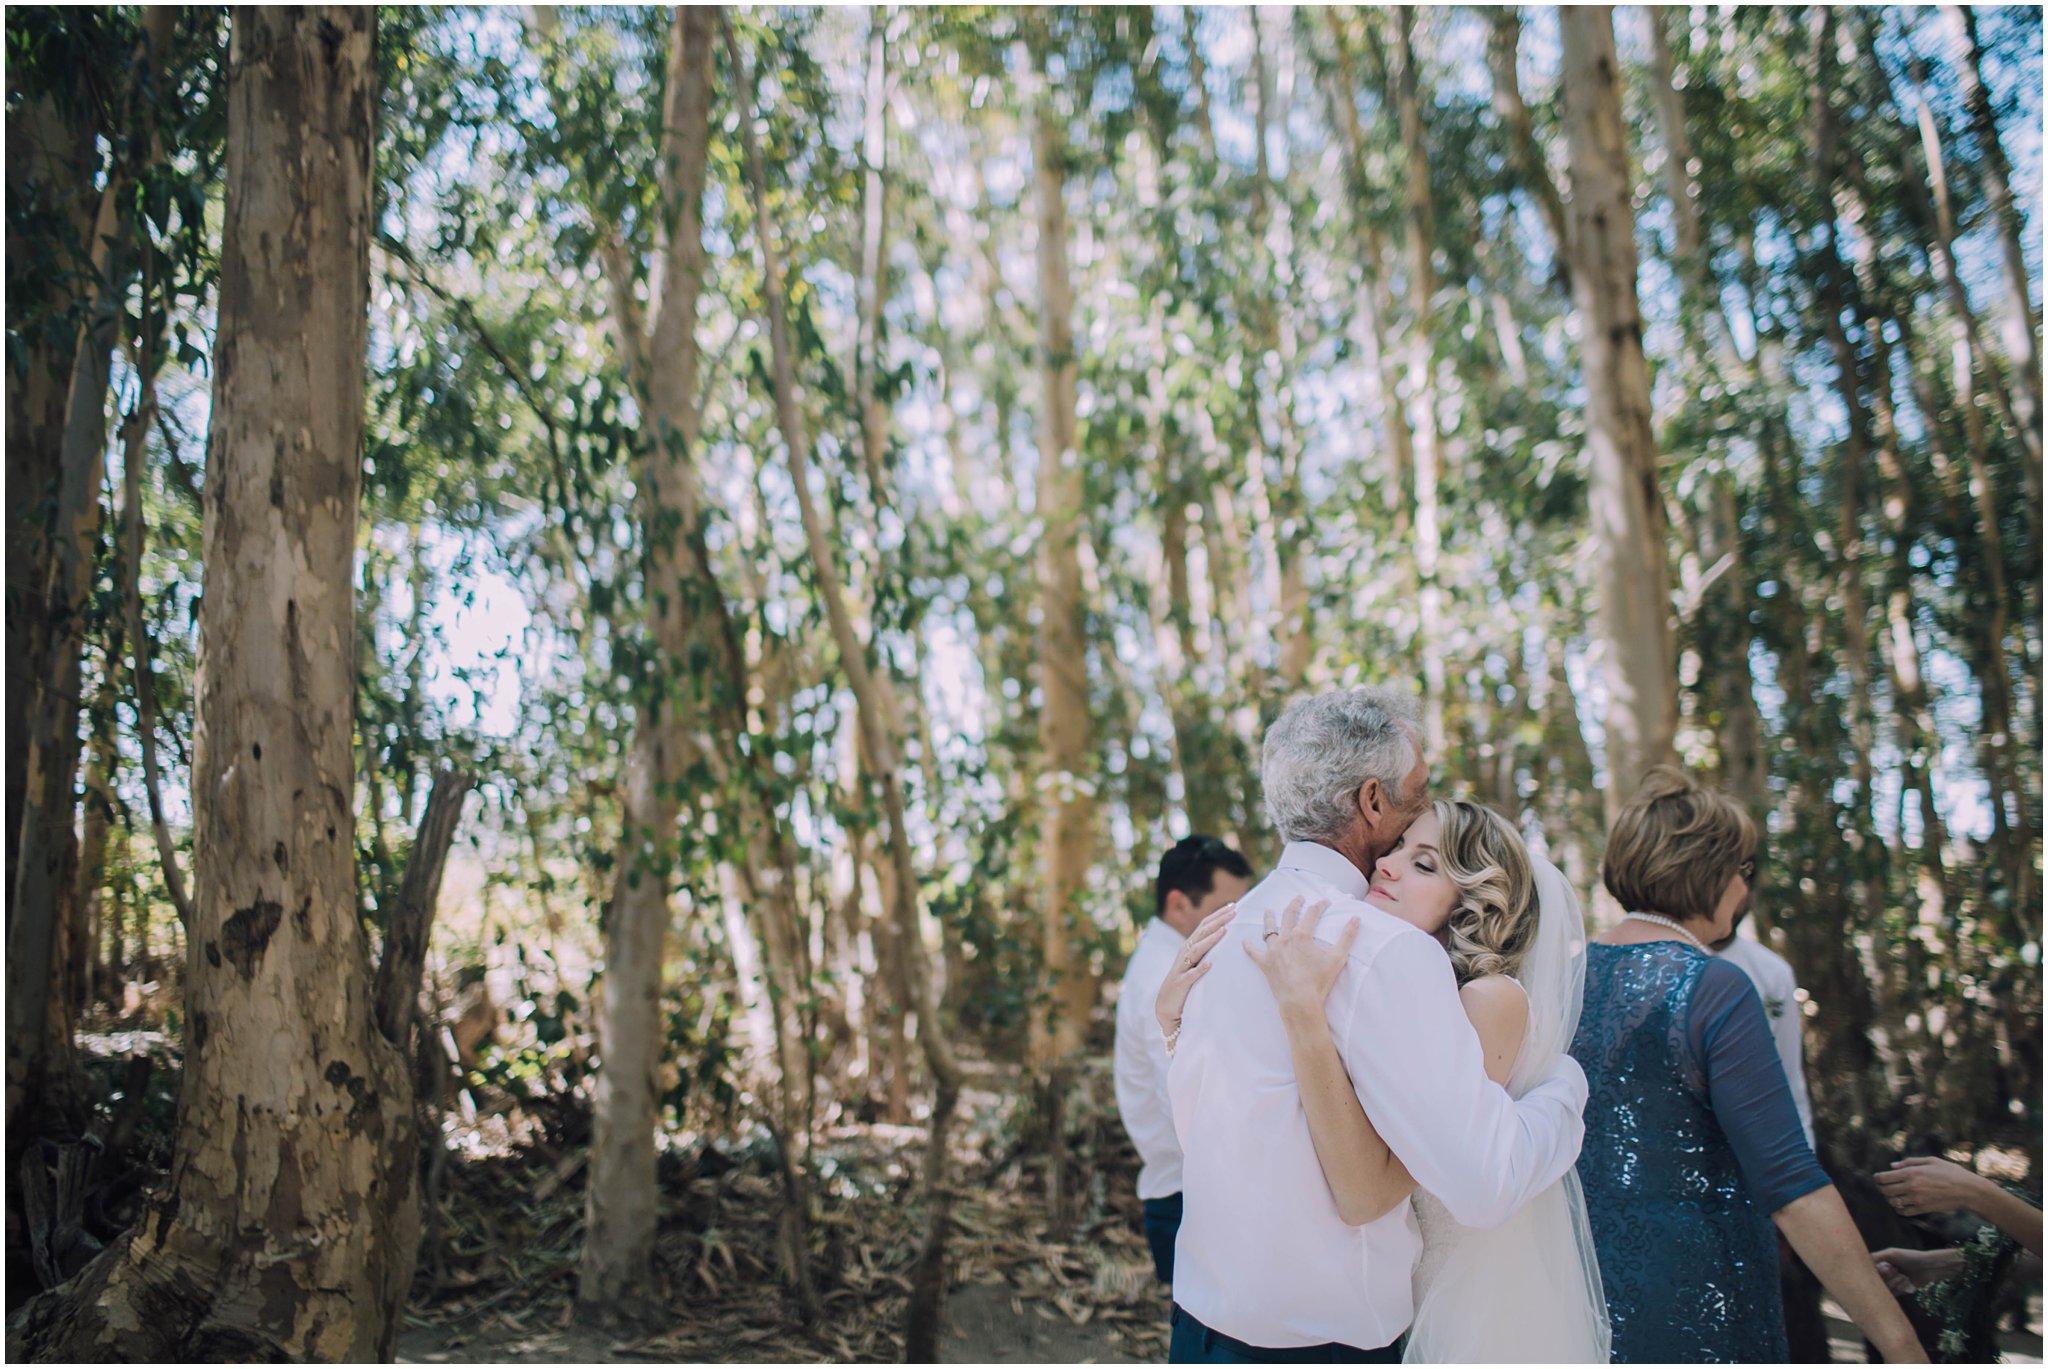 Ronel Kruger Cape Town Wedding and Lifestyle Photographer_2843.jpg